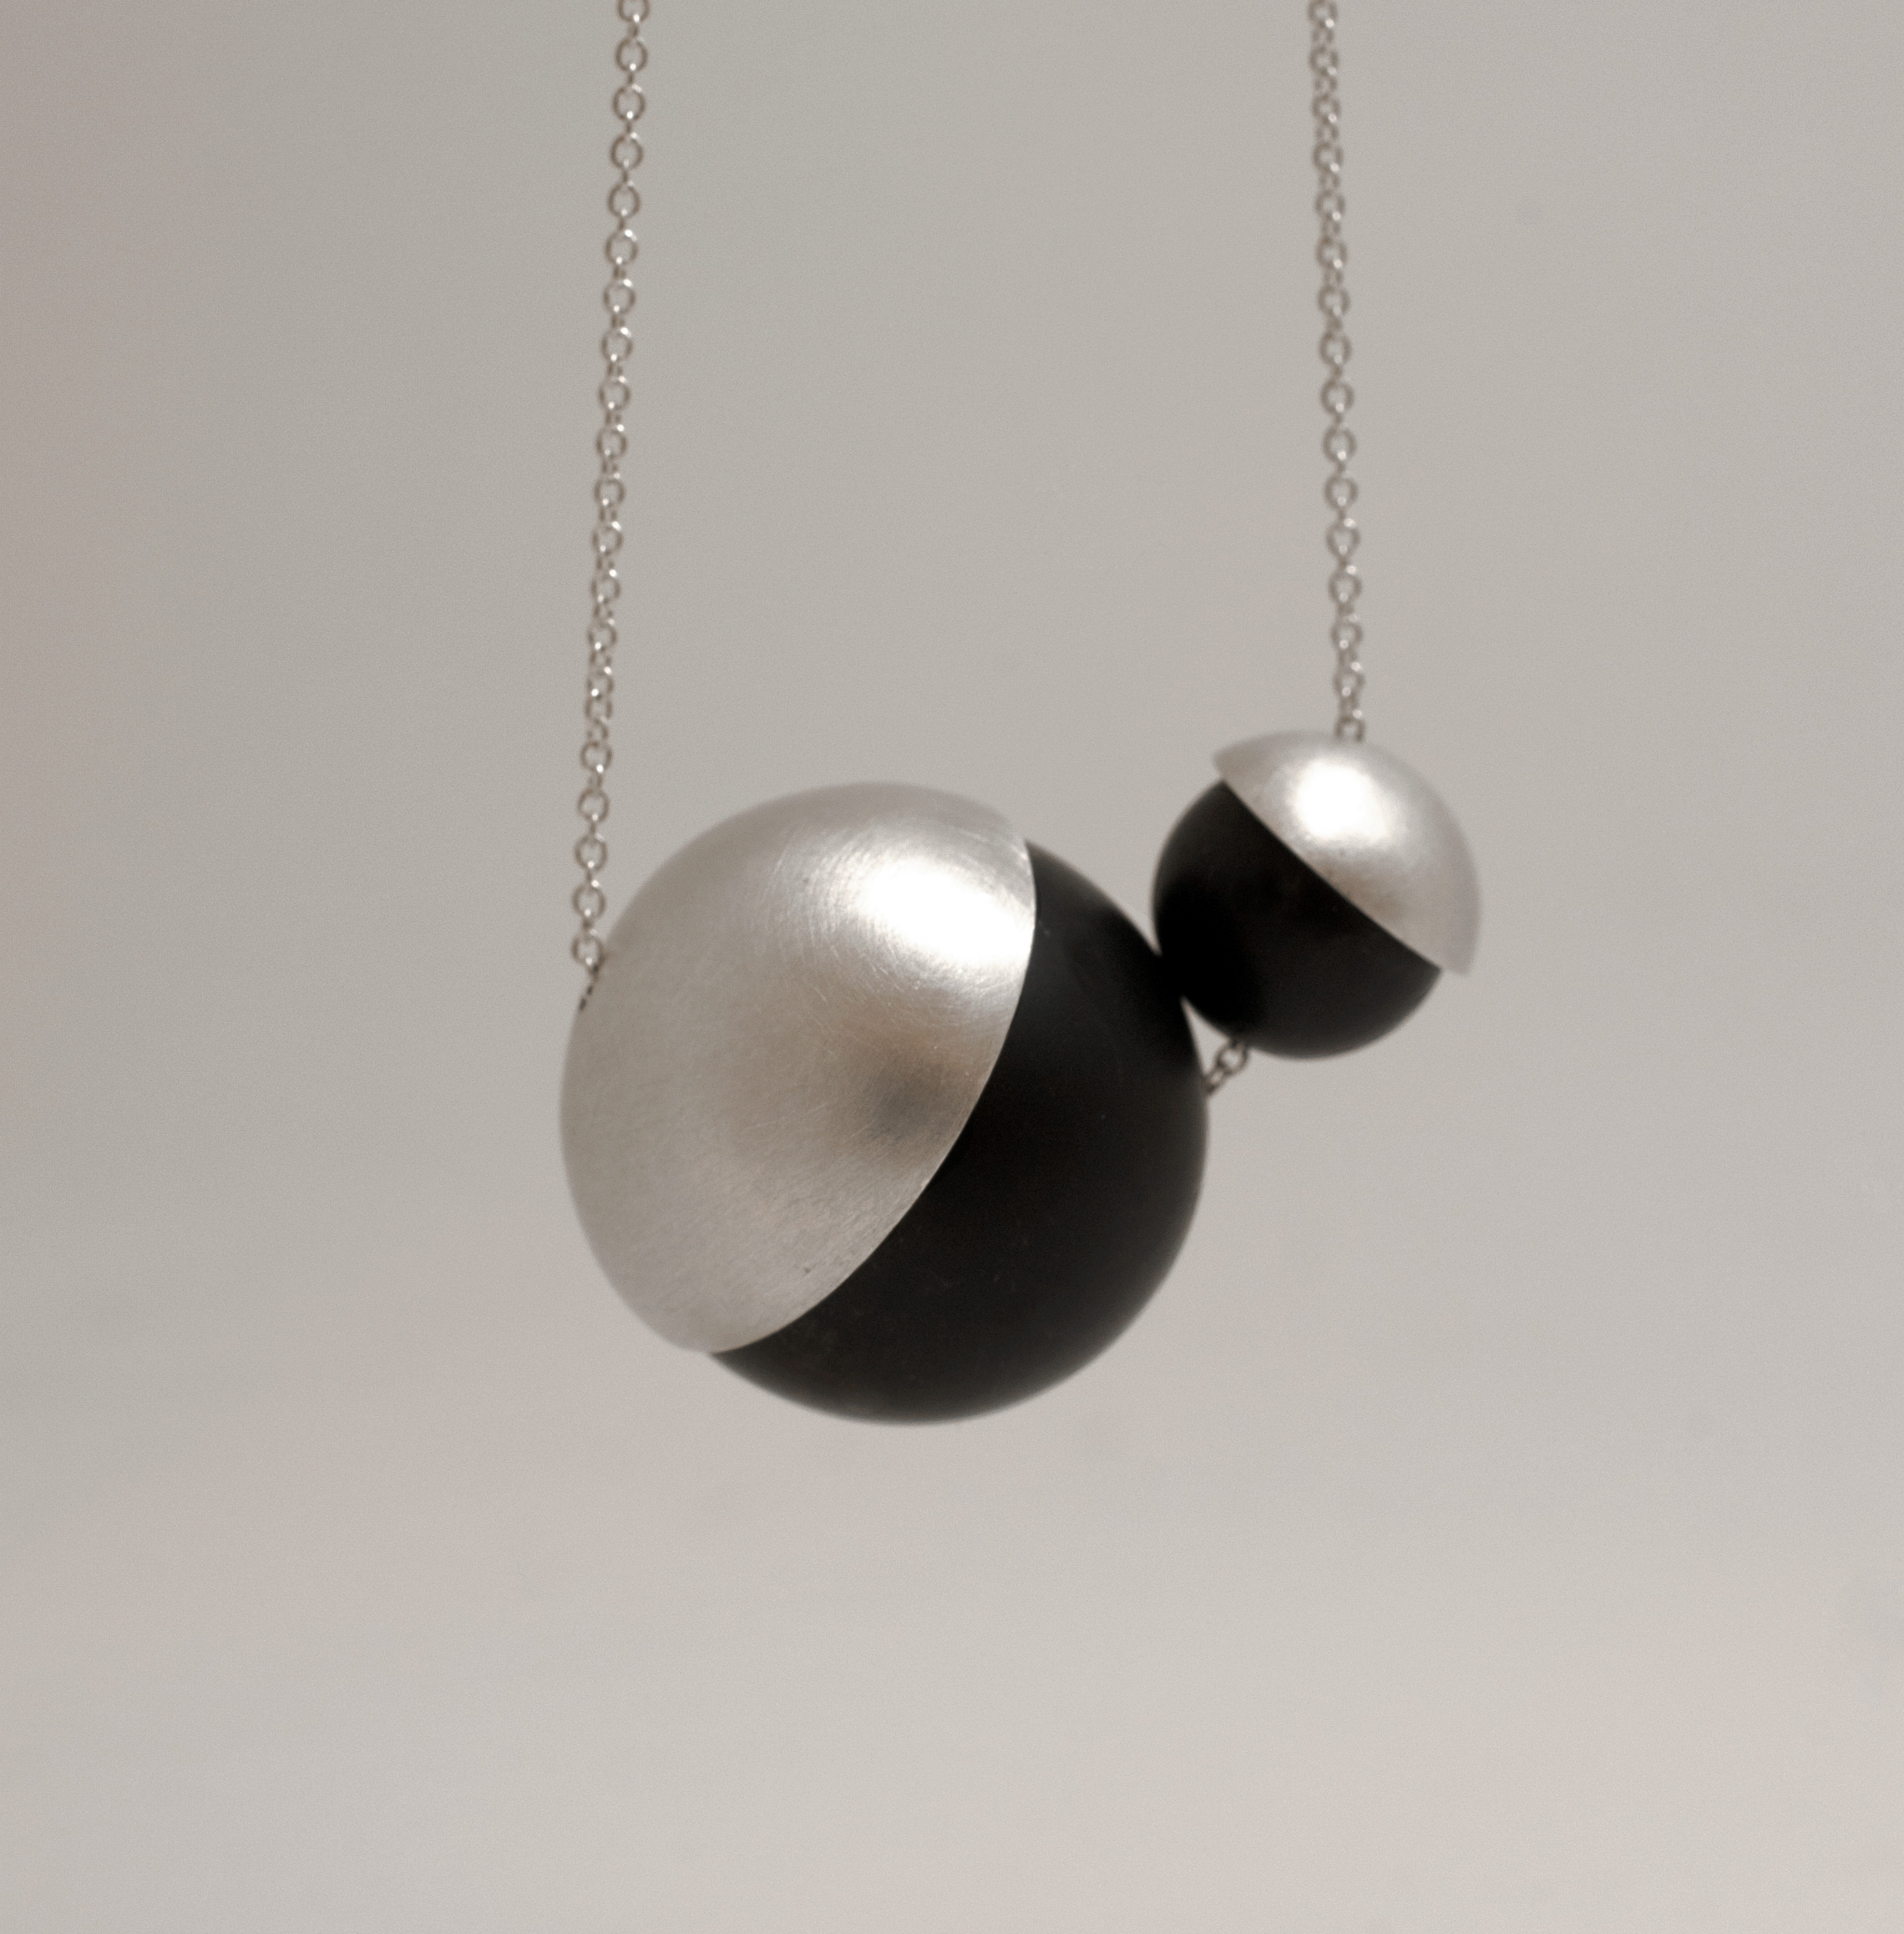 Onyx and Silver Penumbra Necklace